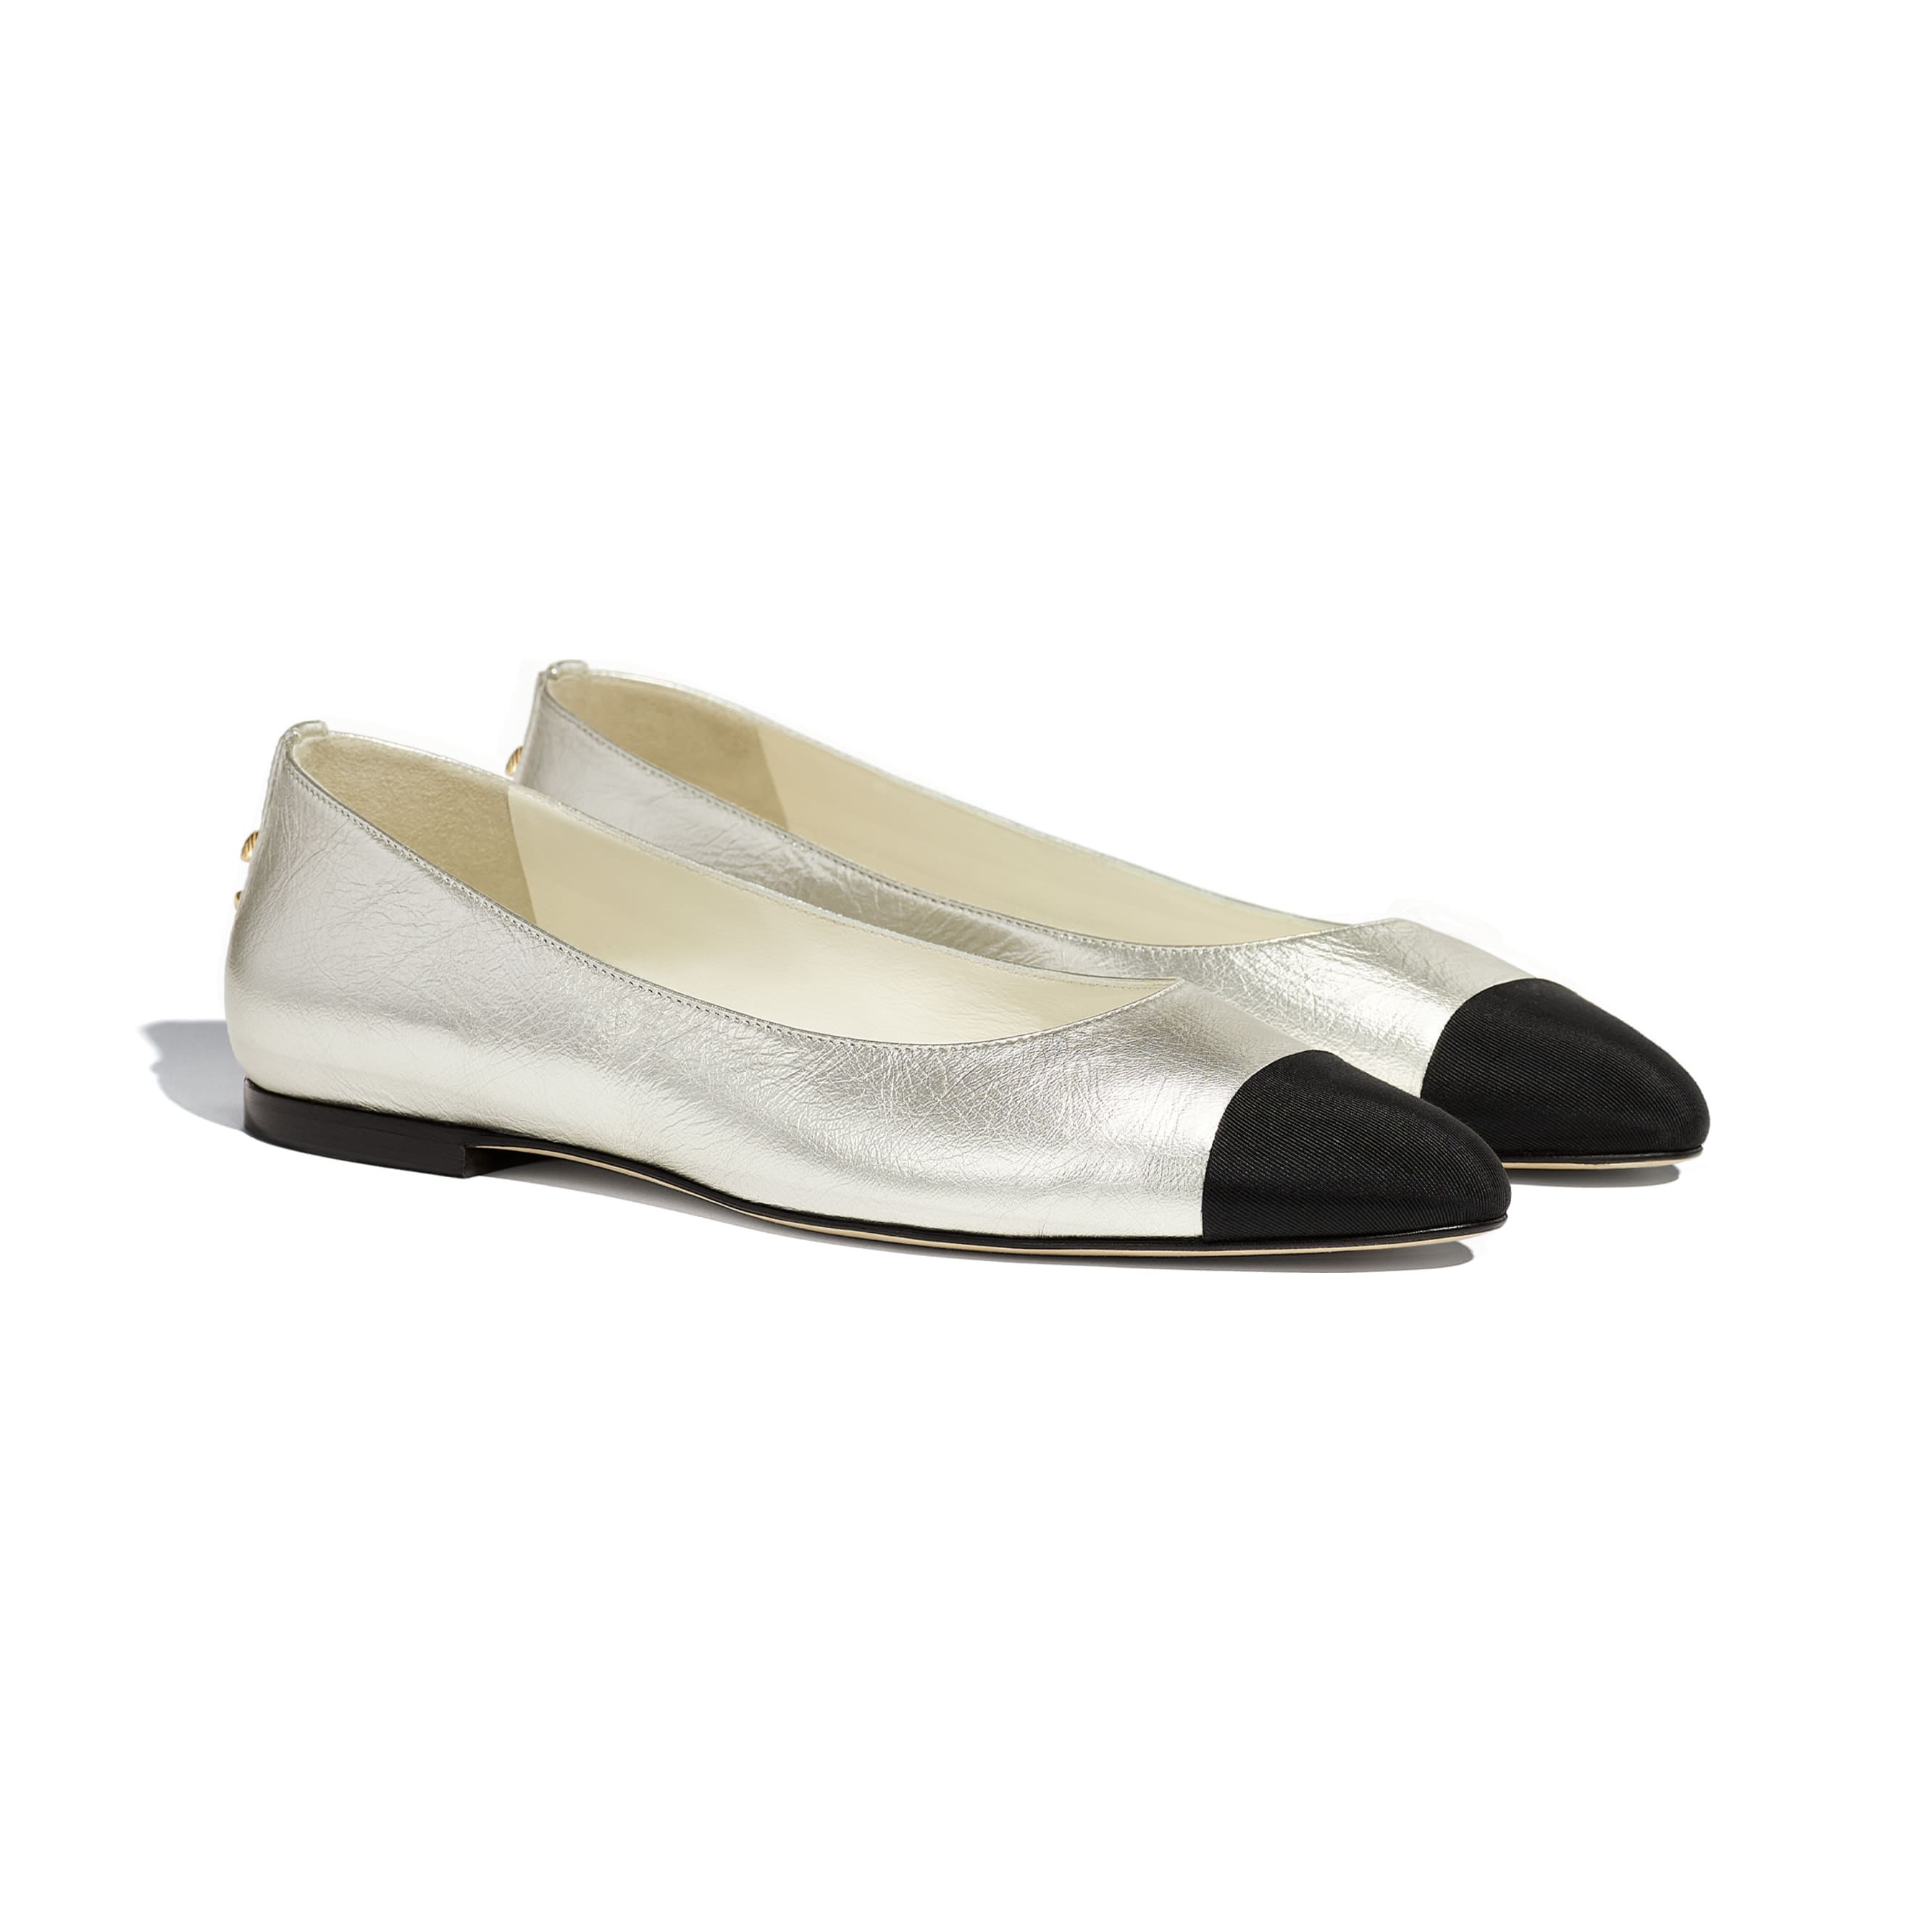 Flats - Silver & Black - Laminated Lambskin & Grosgrain - CHANEL - Alternative view - see standard sized version